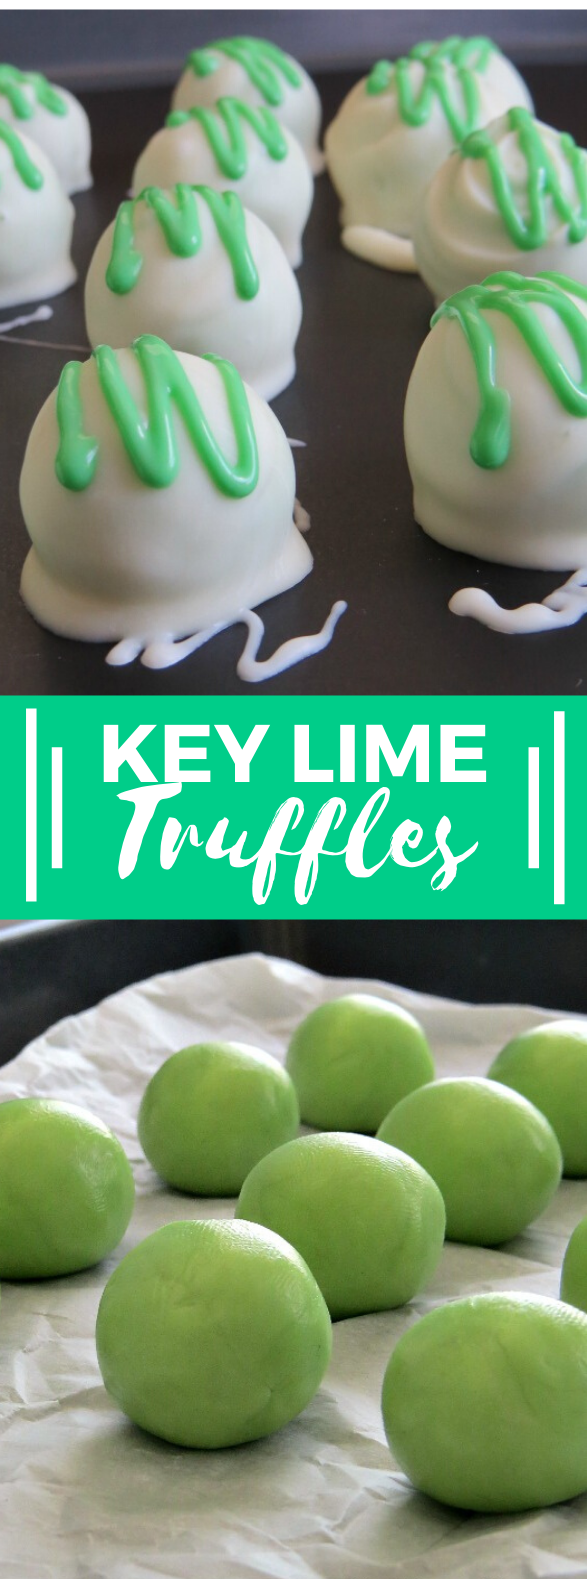 KEY LIME TRUFFLES RECIPE #desserts #simplerecipes